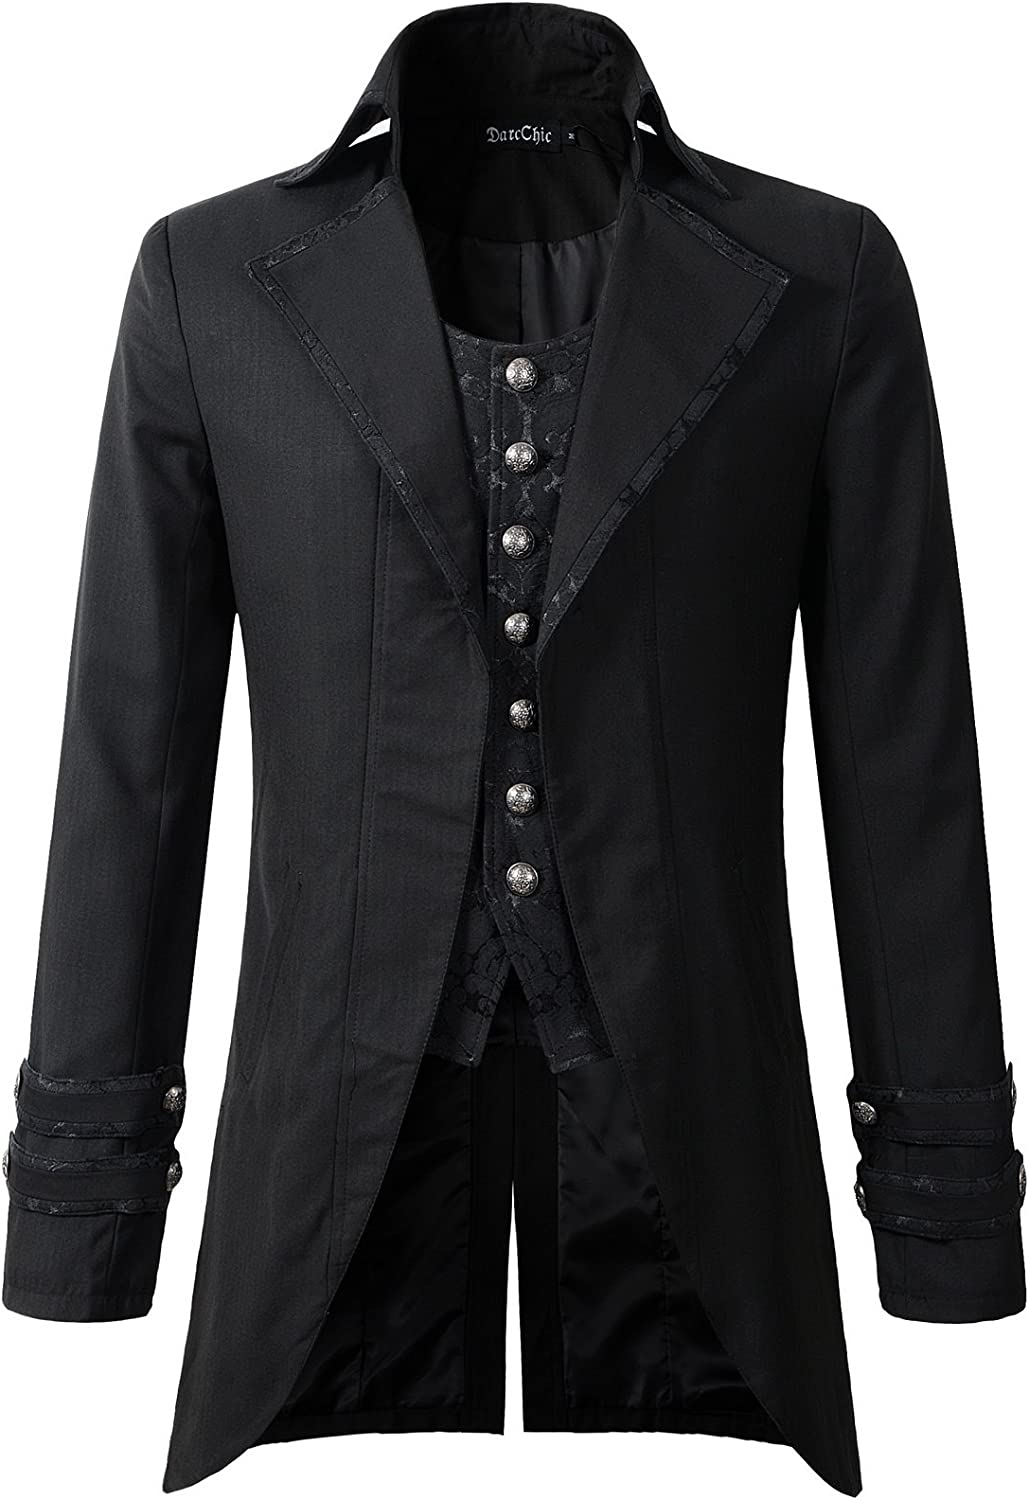 DarcChic Mens Gothic Morning Jacket Tailcoat Steampunk Victorian